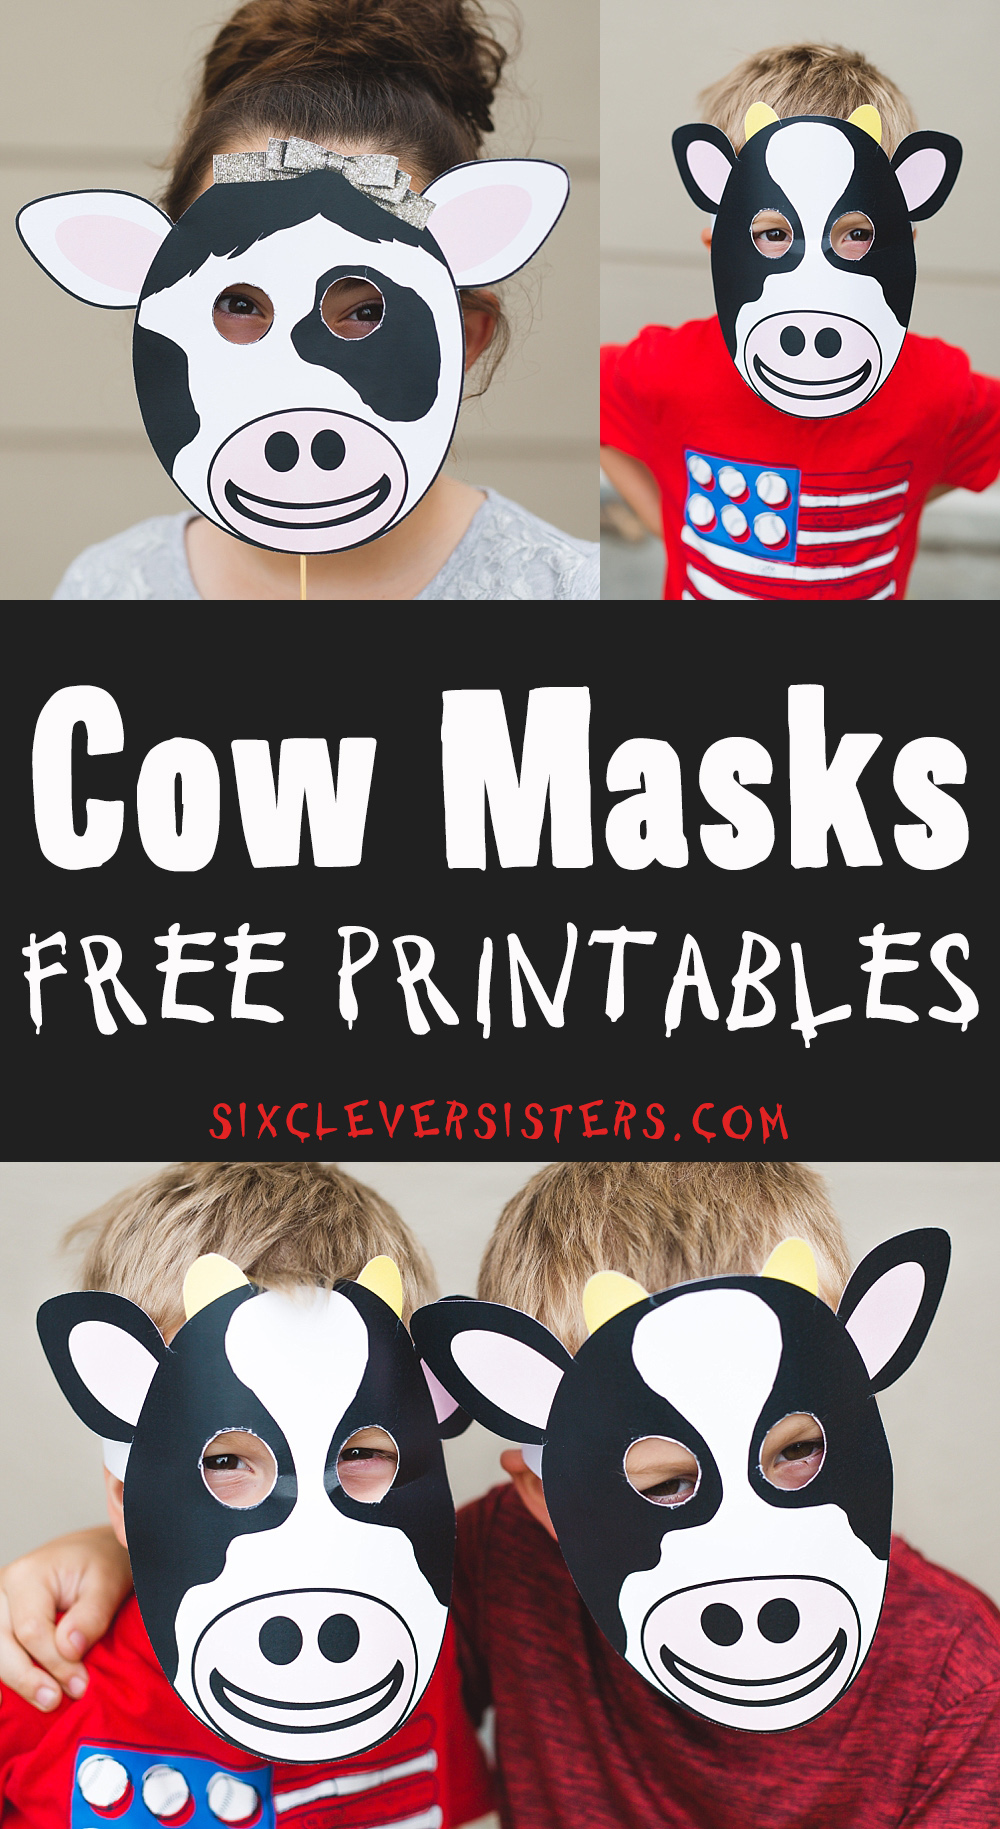 image relating to Printable Cow Mask called Chick Fil A Cow Mask - 6 Good Sisters